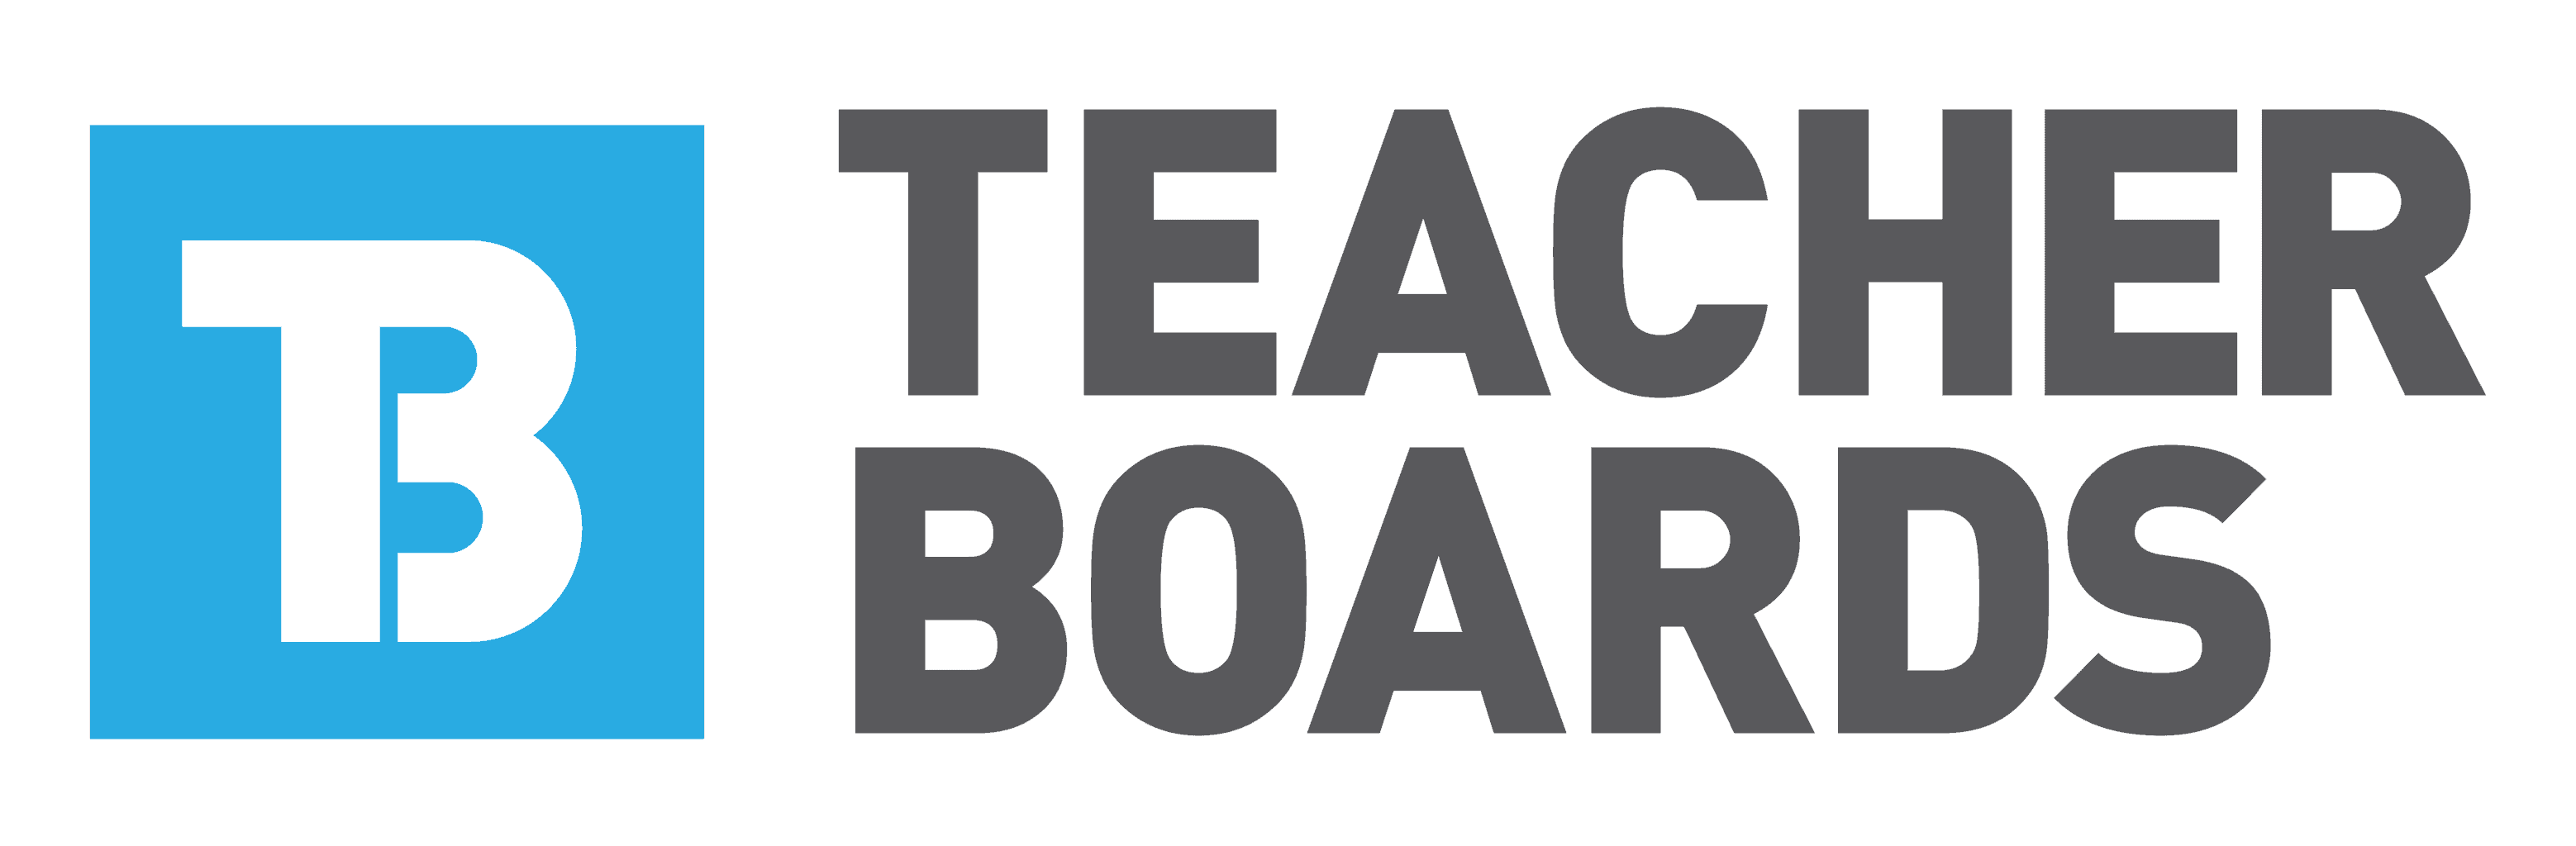 TeacherBoards Logo